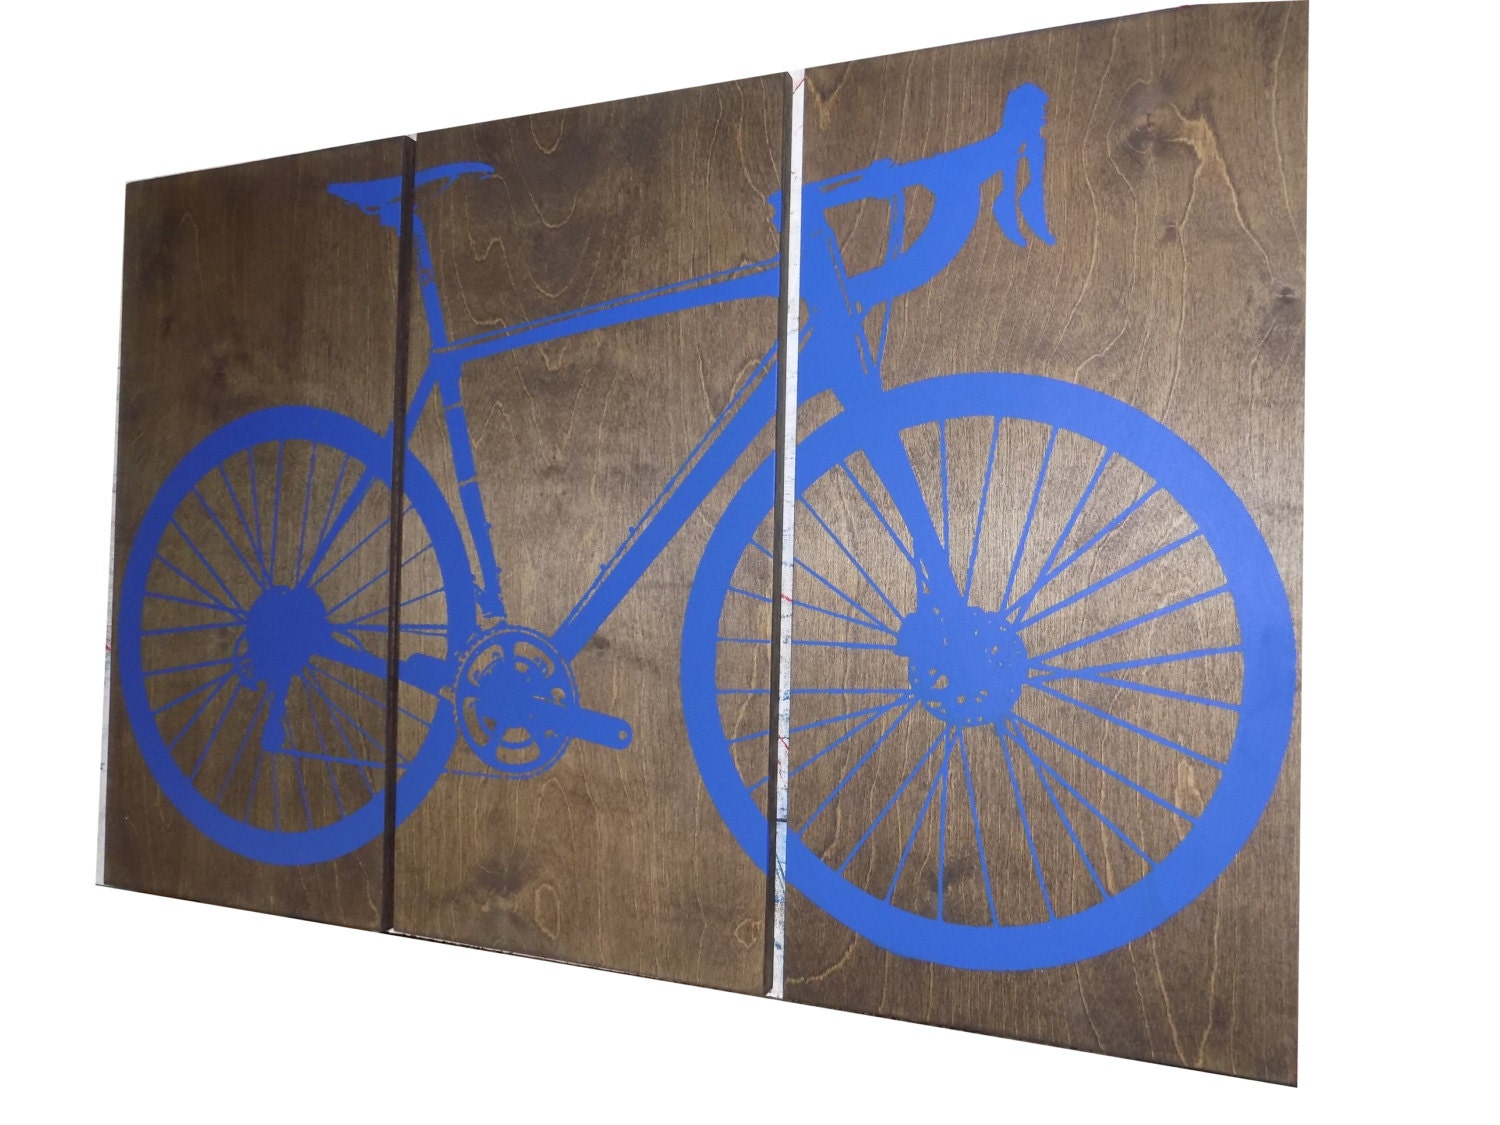 Road Bike / Street Bike Wall Art / Bicycle Screen Print / Wood Painting Wall  Art On Stained Solid BIRCH 3/4 Inch Thick U2022 Gift For Him / Her